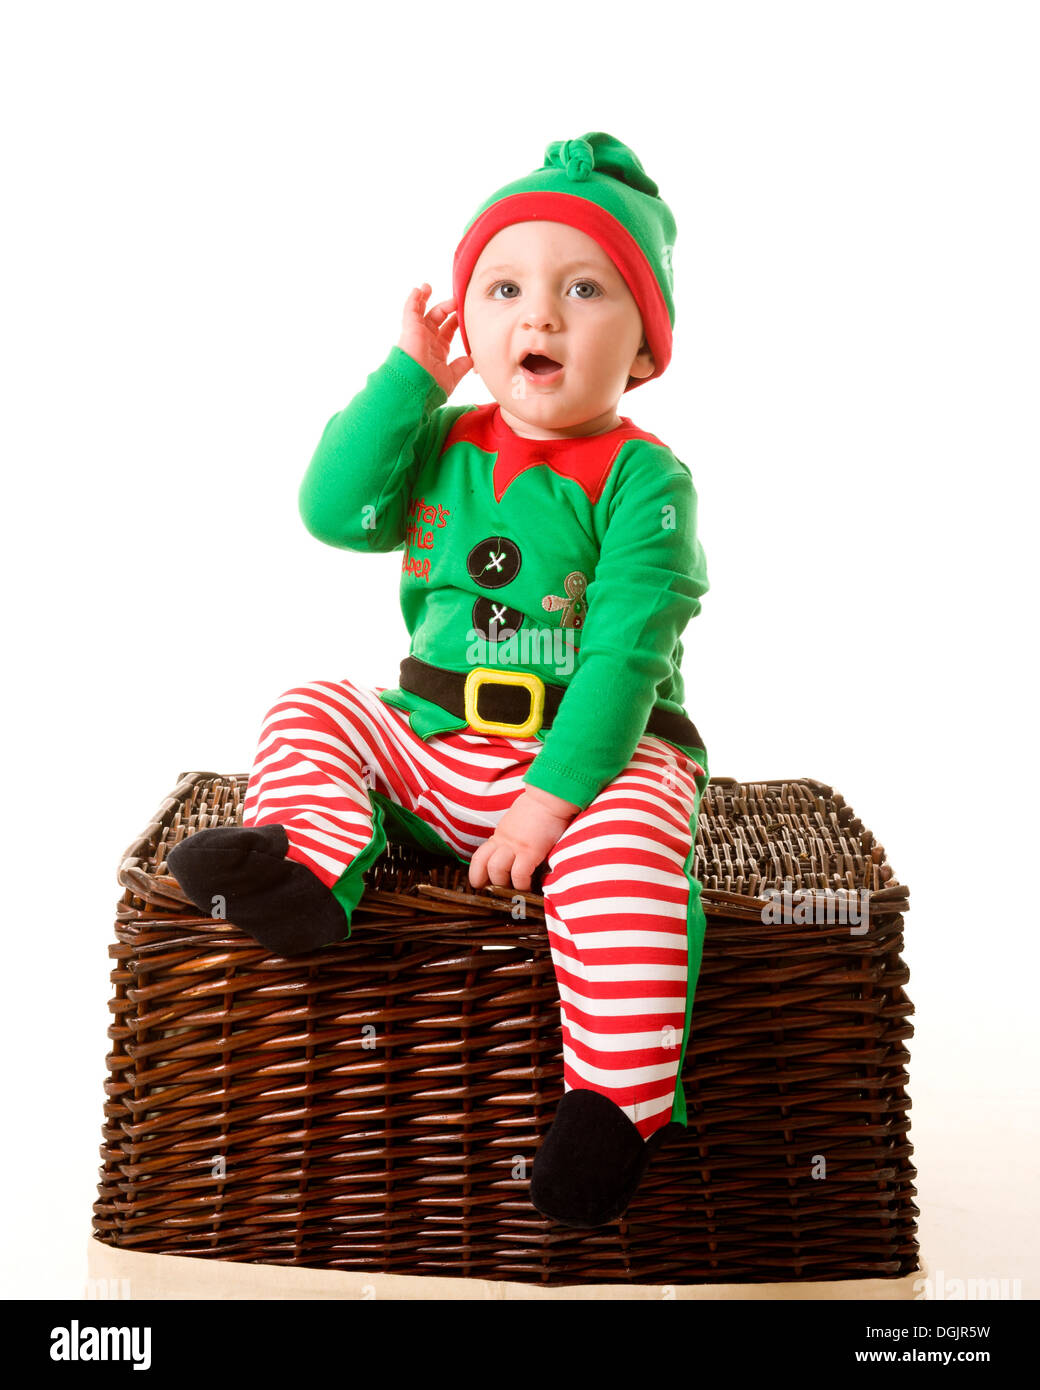 Baby in Christmas Elf costume sitting on a wicker basket, on a white studio background. - Stock Image